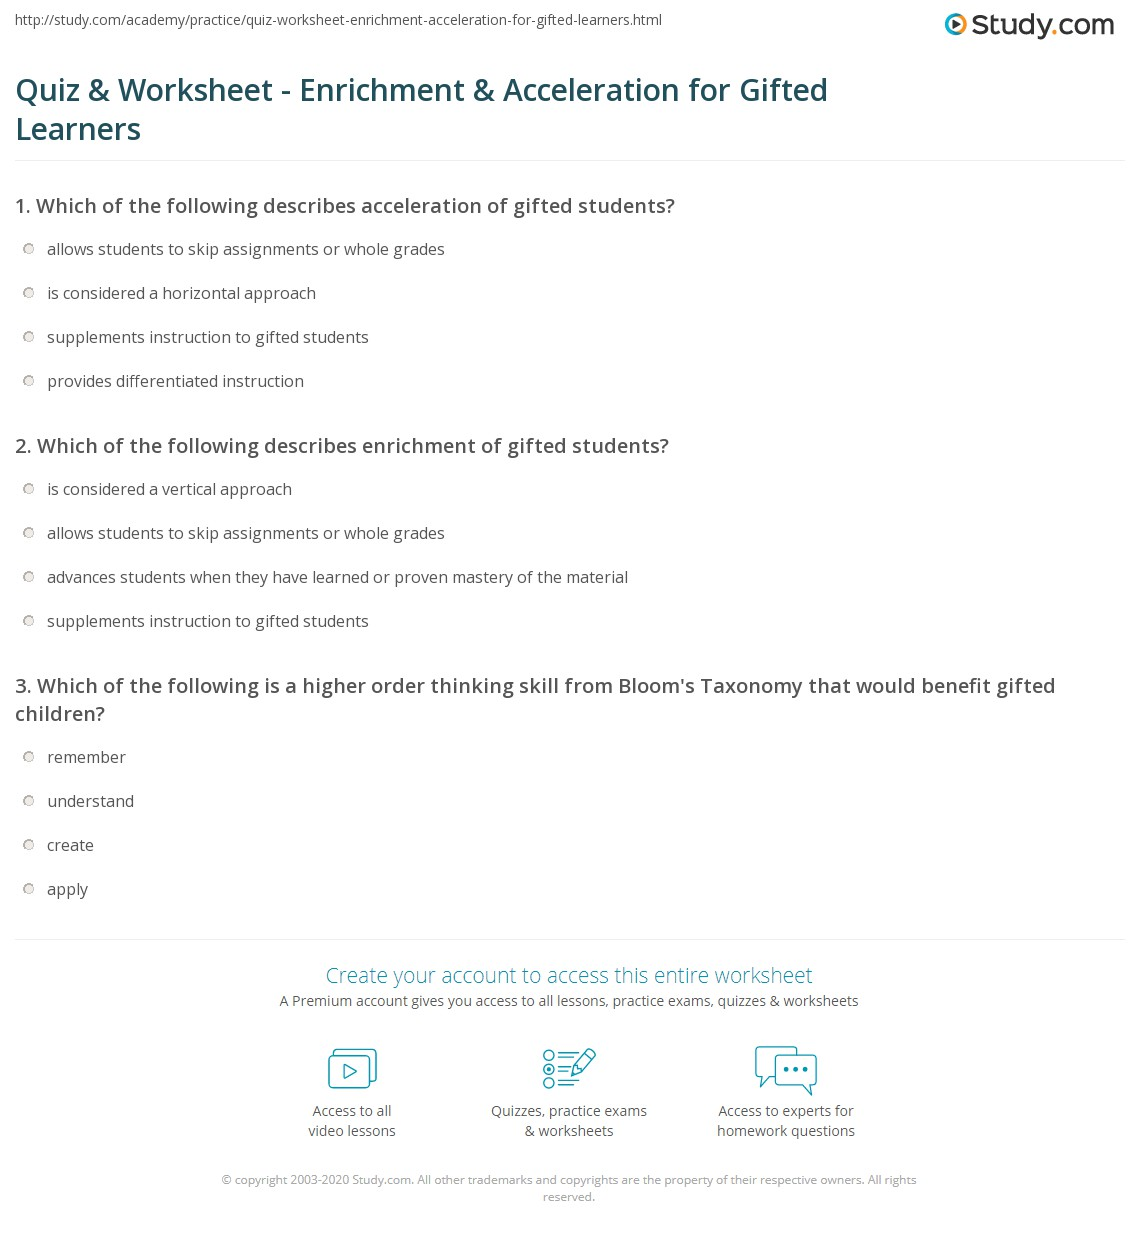 Printables Gifted And Talented Worksheets Joomsimple Thousands – Schoolexpress Math Worksheets